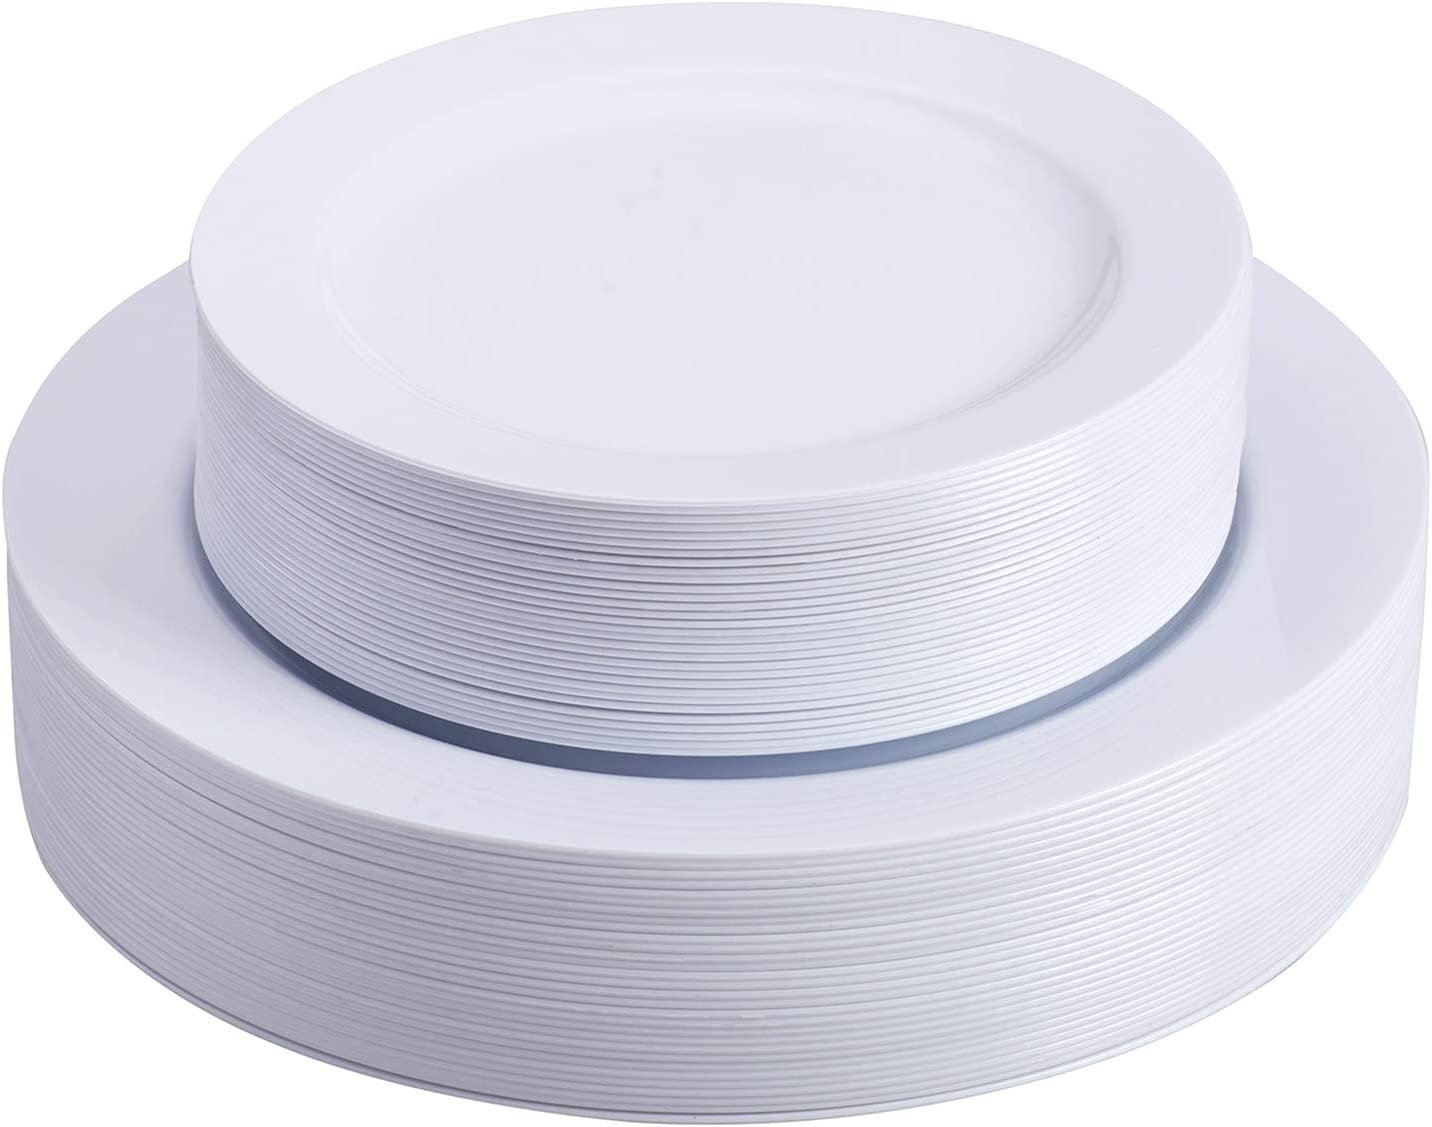 Select Settings 60 pc. Disposable Plastic Plates 30 Dinner Plates & 30 salad Plates Disposable Plate Combo Sets (White Round Plates)